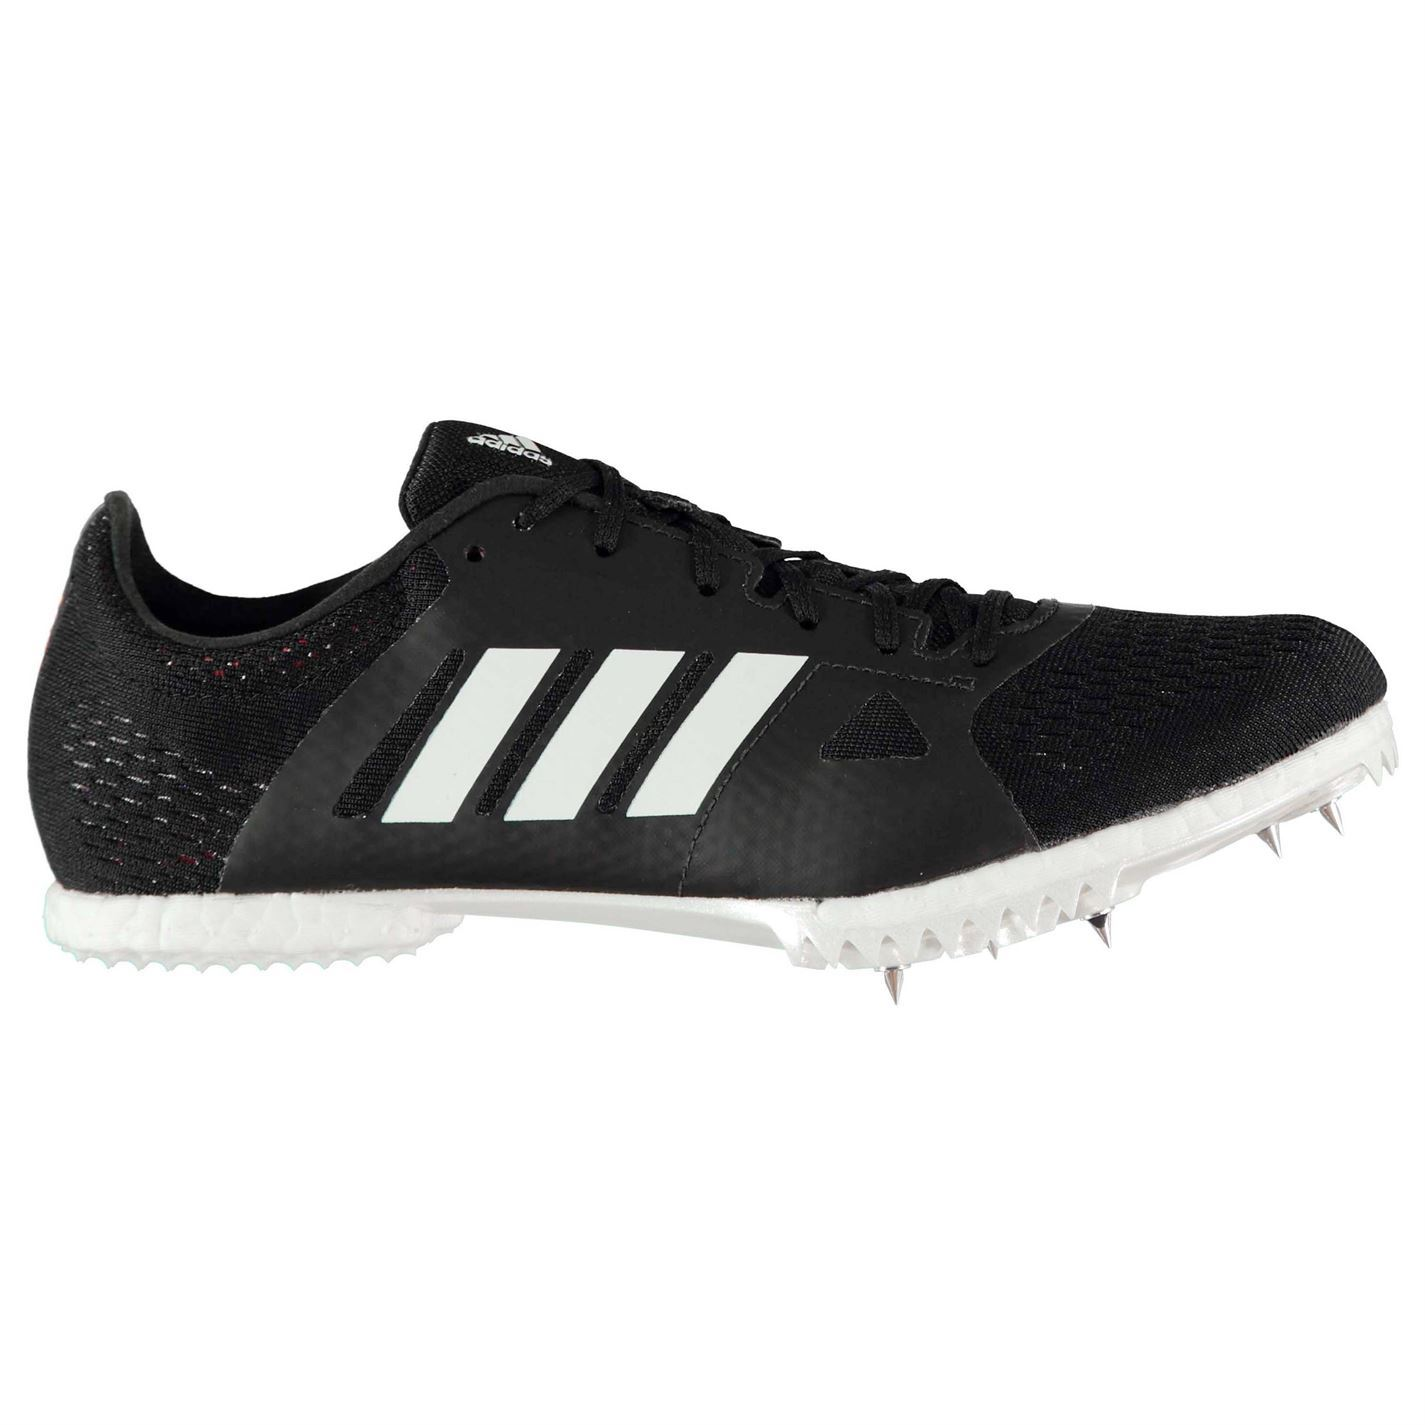 aa80c56e0 adidas Mens adizero Middle Distance Running Spikes Track Shoes Lace ...